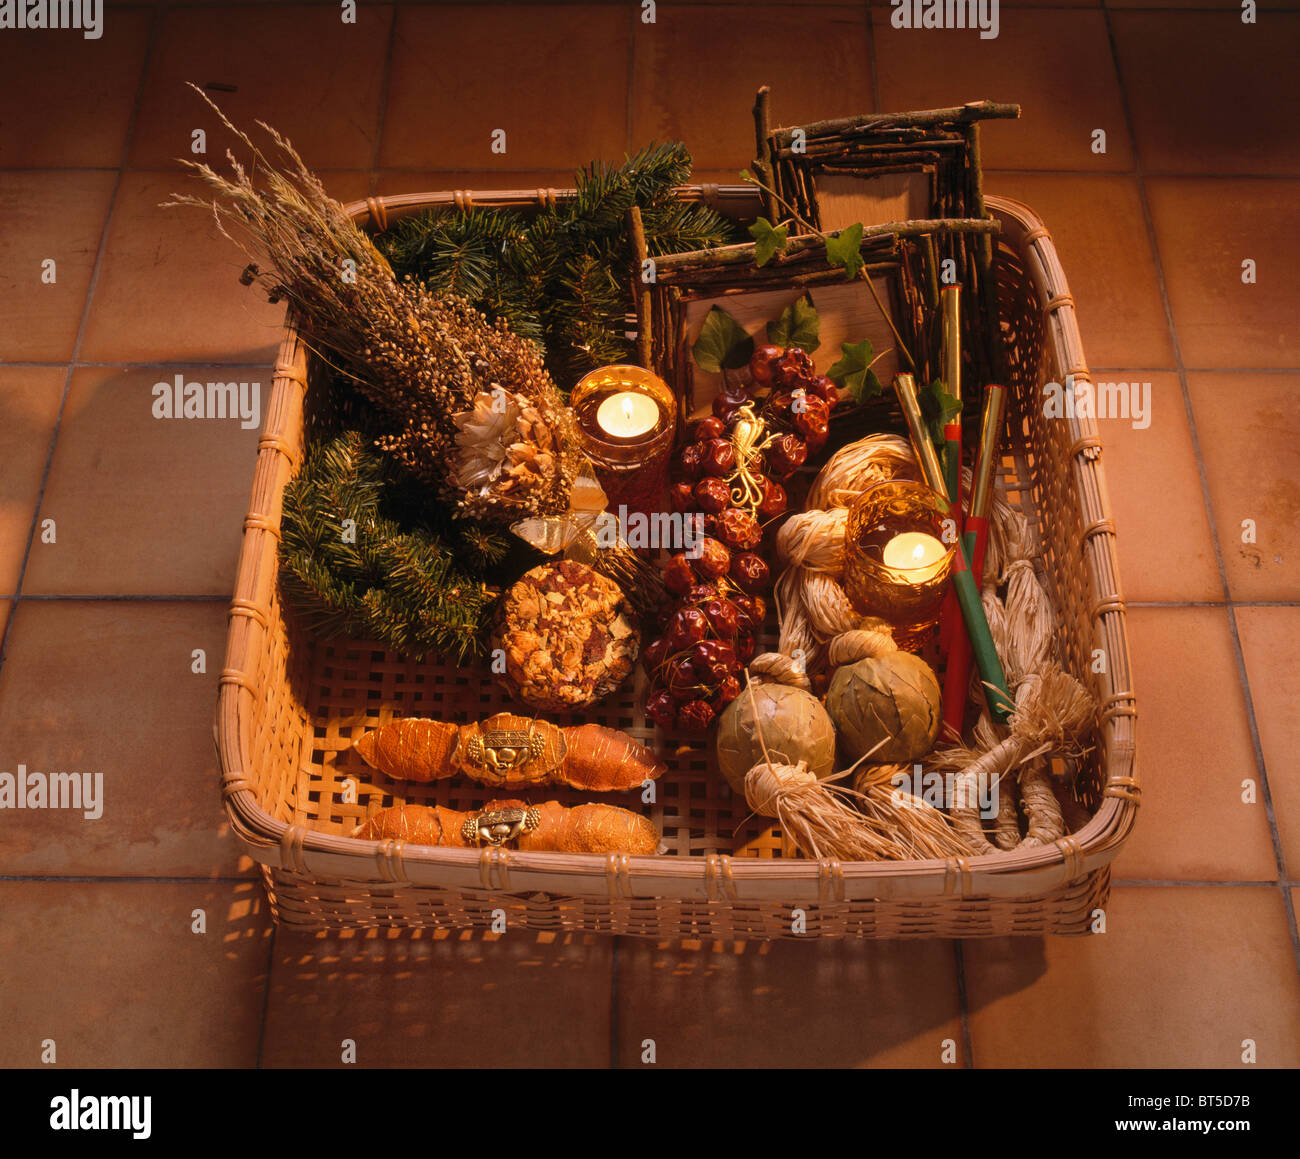 basket of dried herbs and spices with homemade christmas decorations